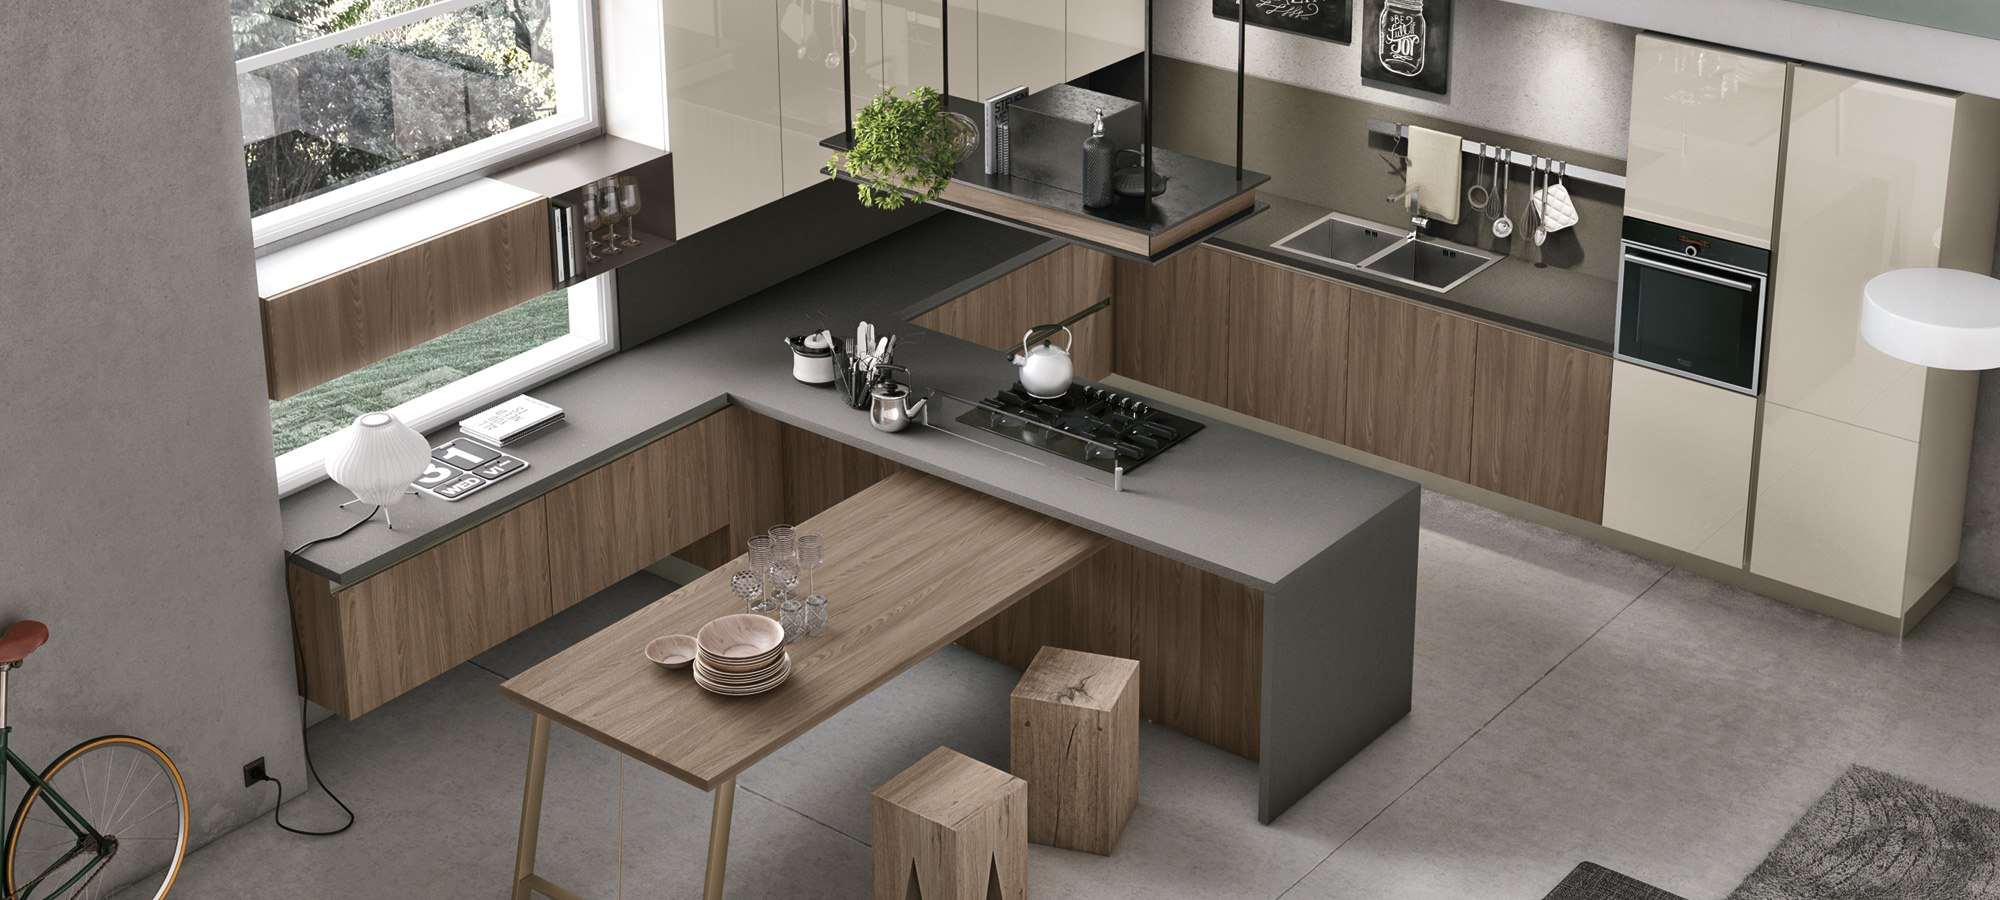 stosa-cucine-moderne-infinity-234